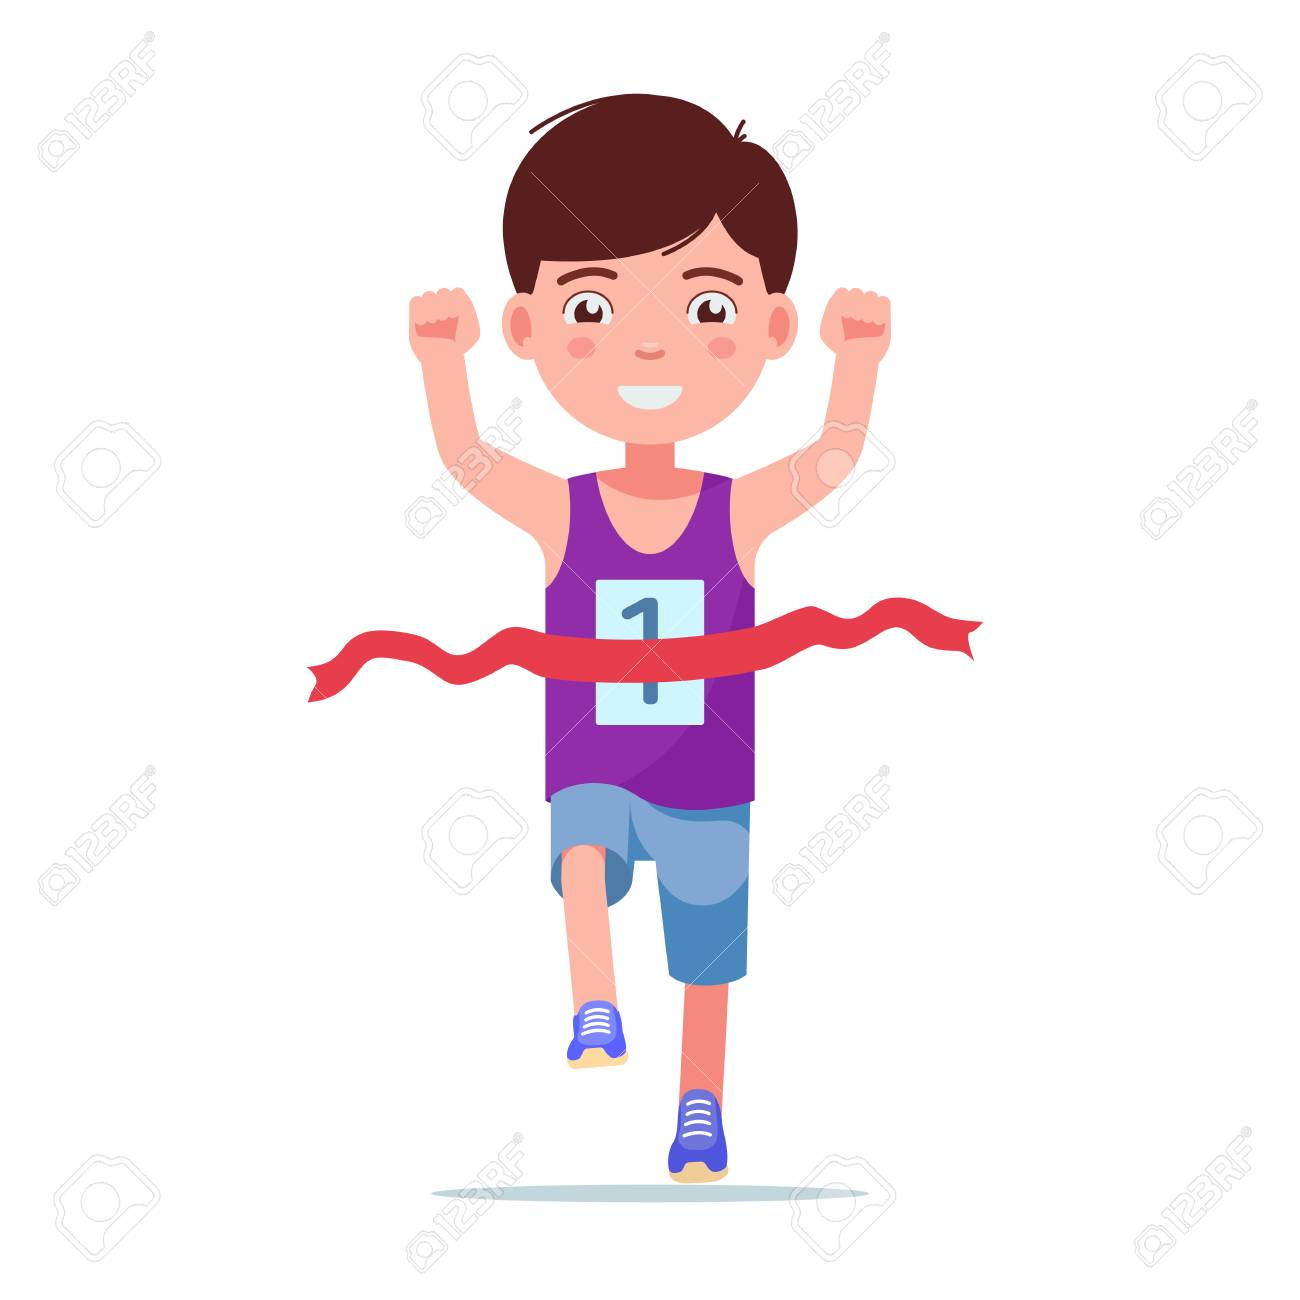 Vector illustration of a cartoon boy running and winning a marathon. Isolated white background. Kid runner winner. The child finishes the first race. Flat style. - 109215895